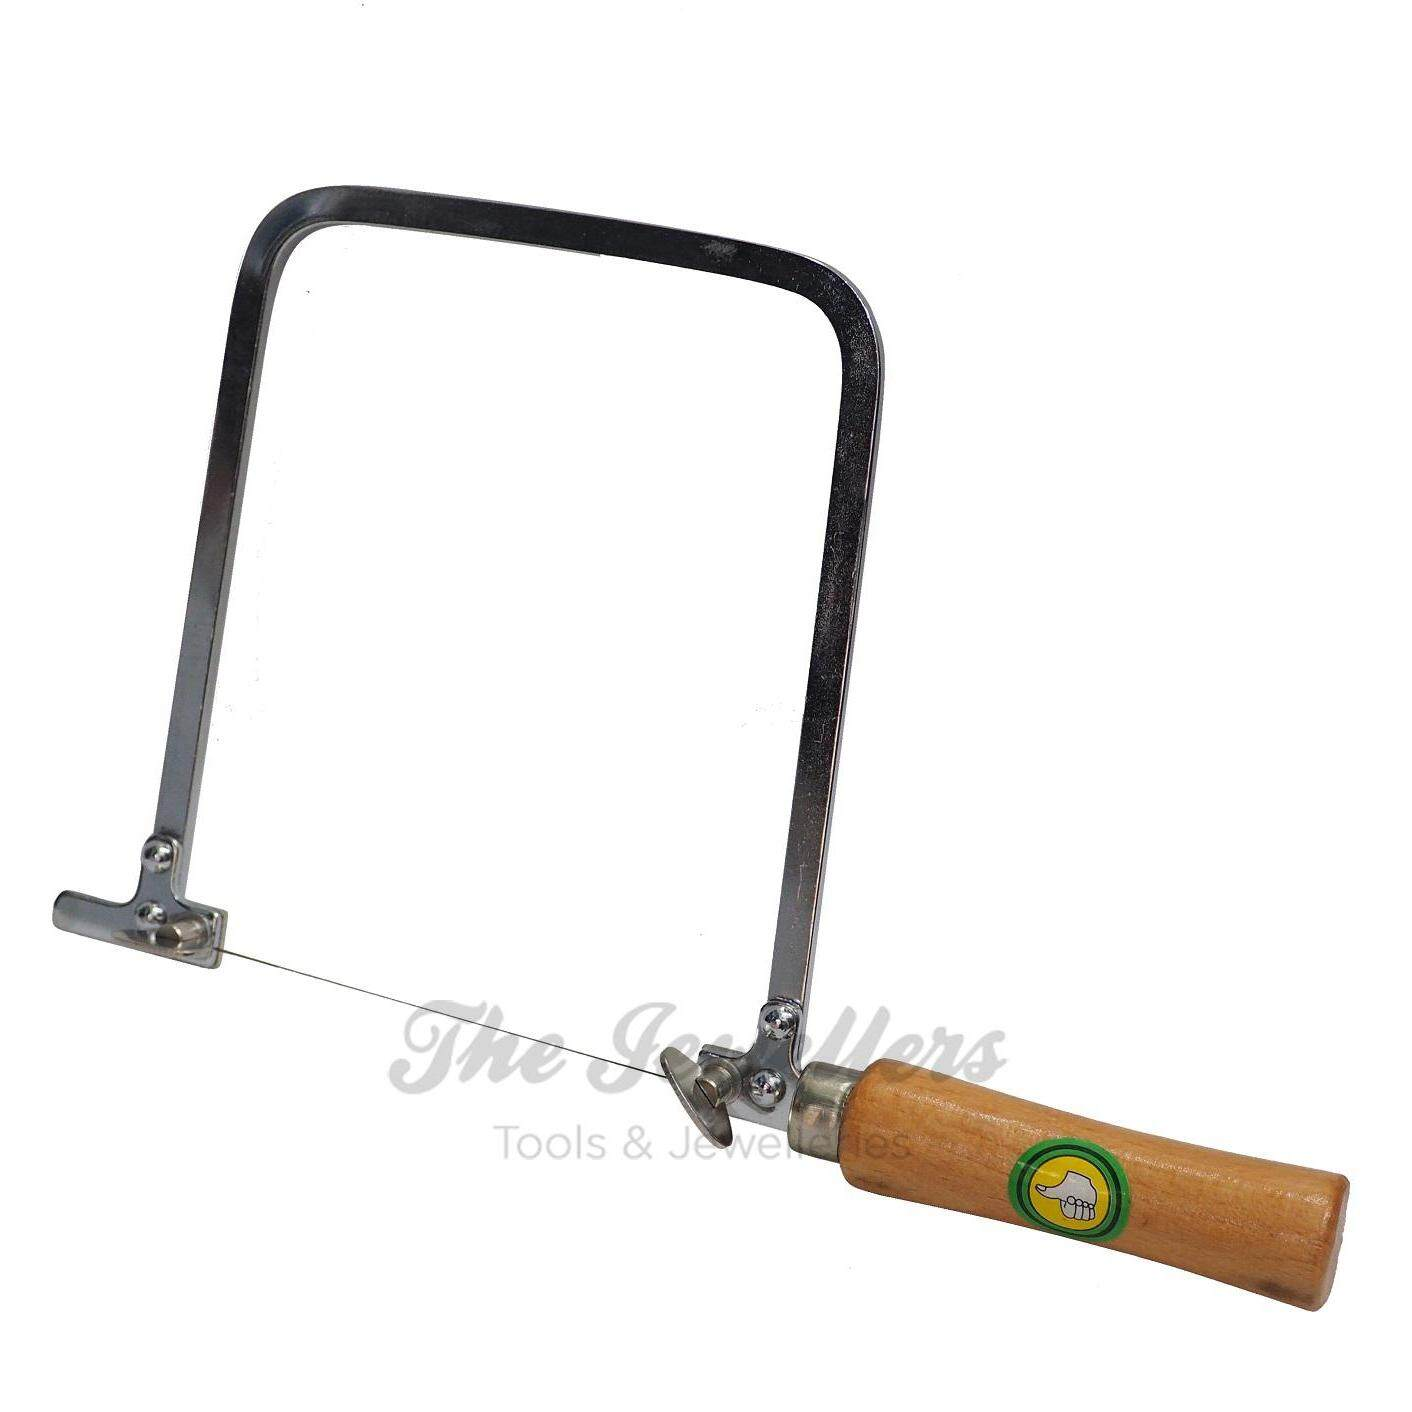 150mm Saw Frame with Wooden Handle